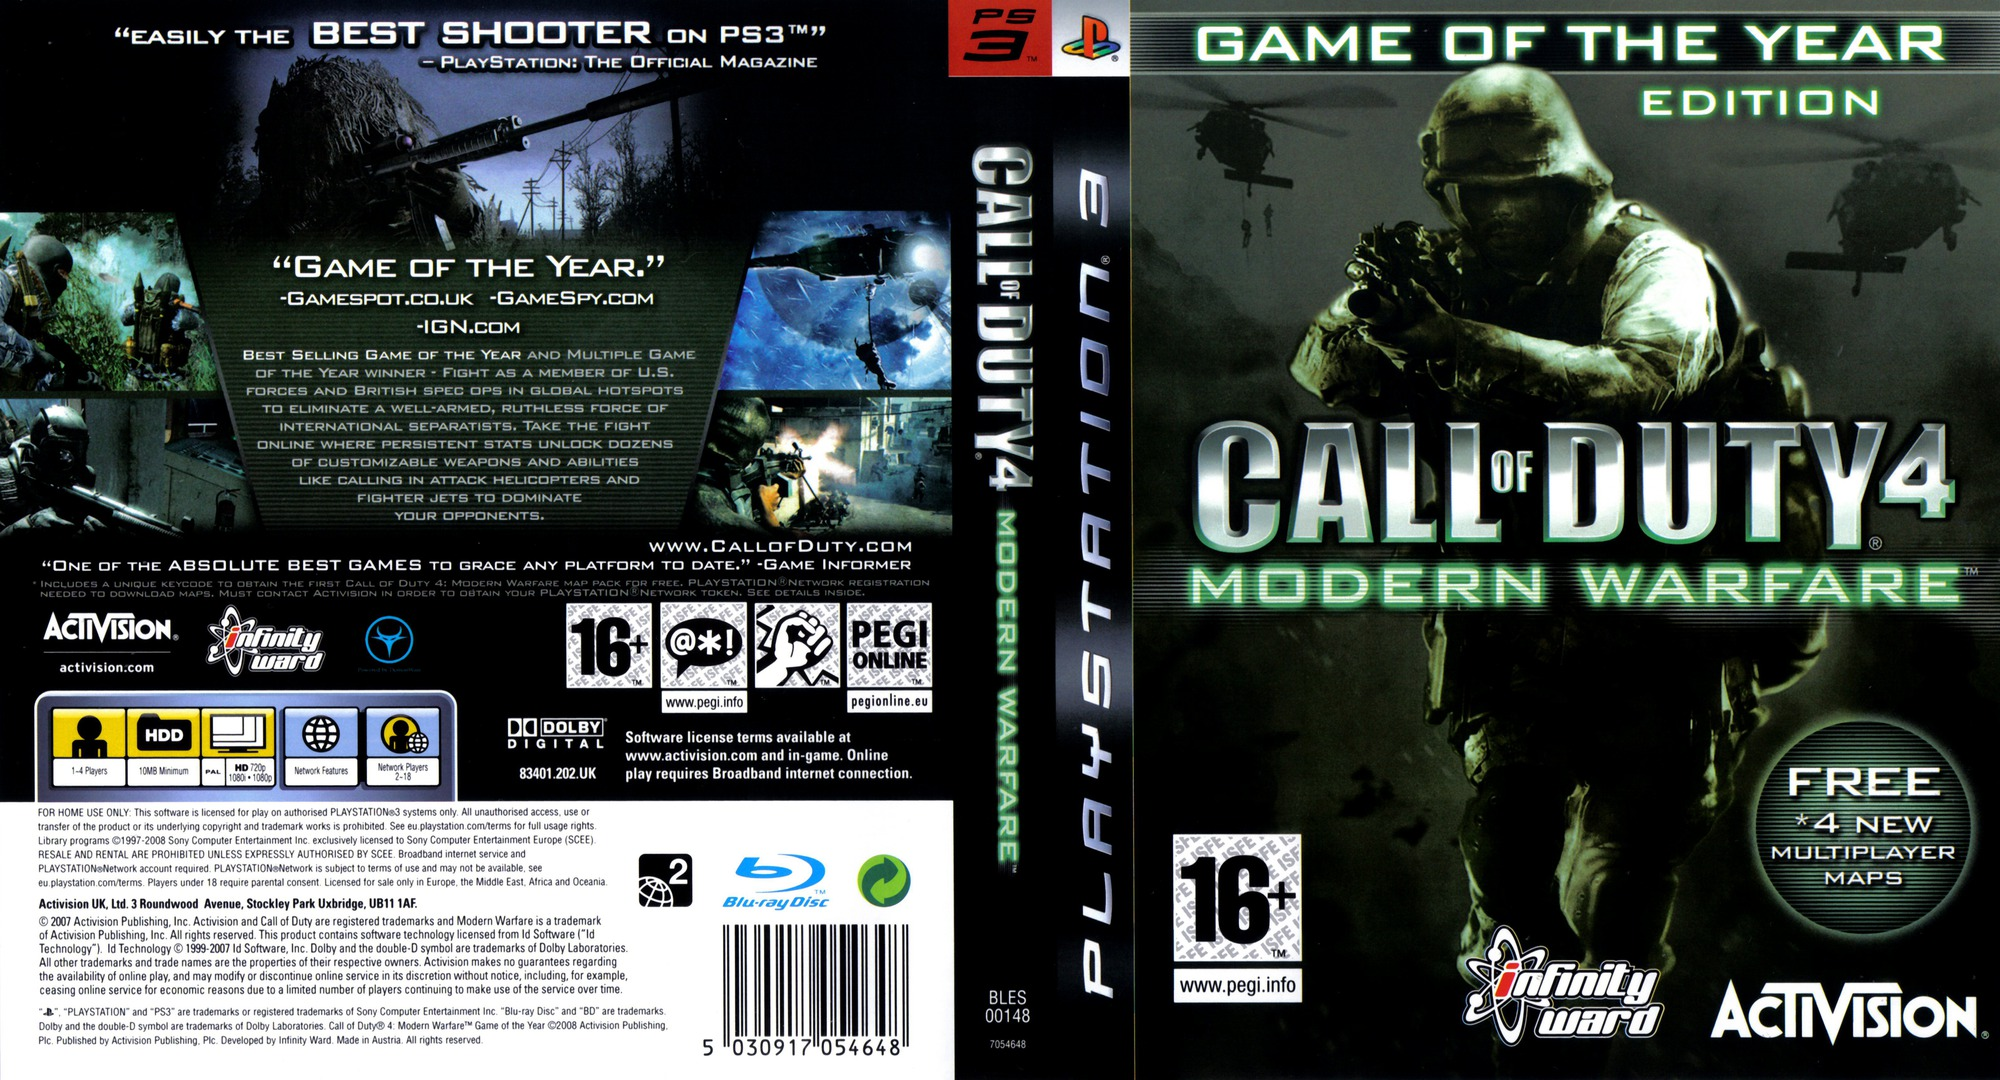 call of duty game of the year - Windows 10 Forums